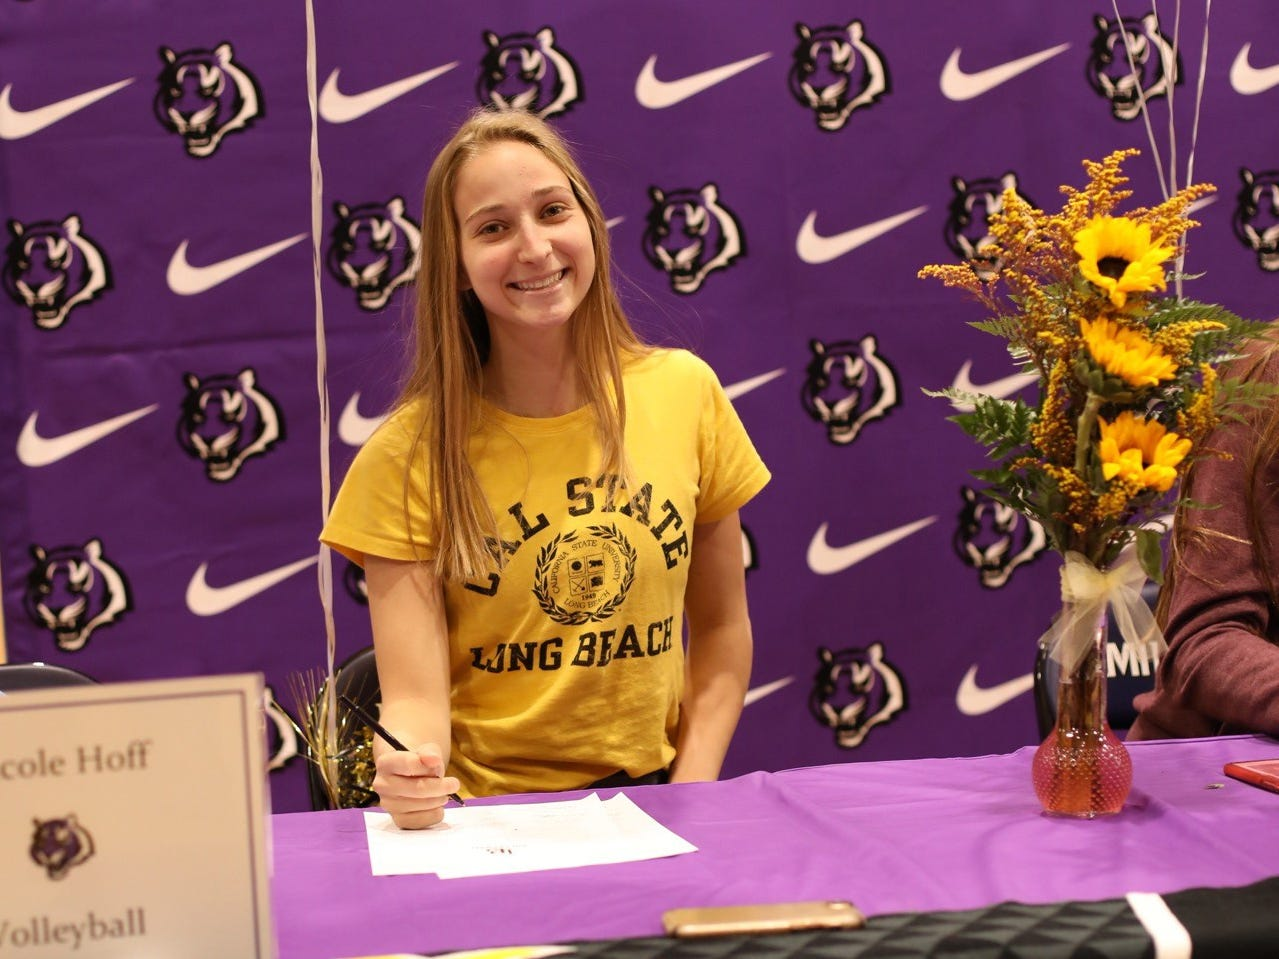 Nicole Hoff from Millennium High School, signed with Long Beach State